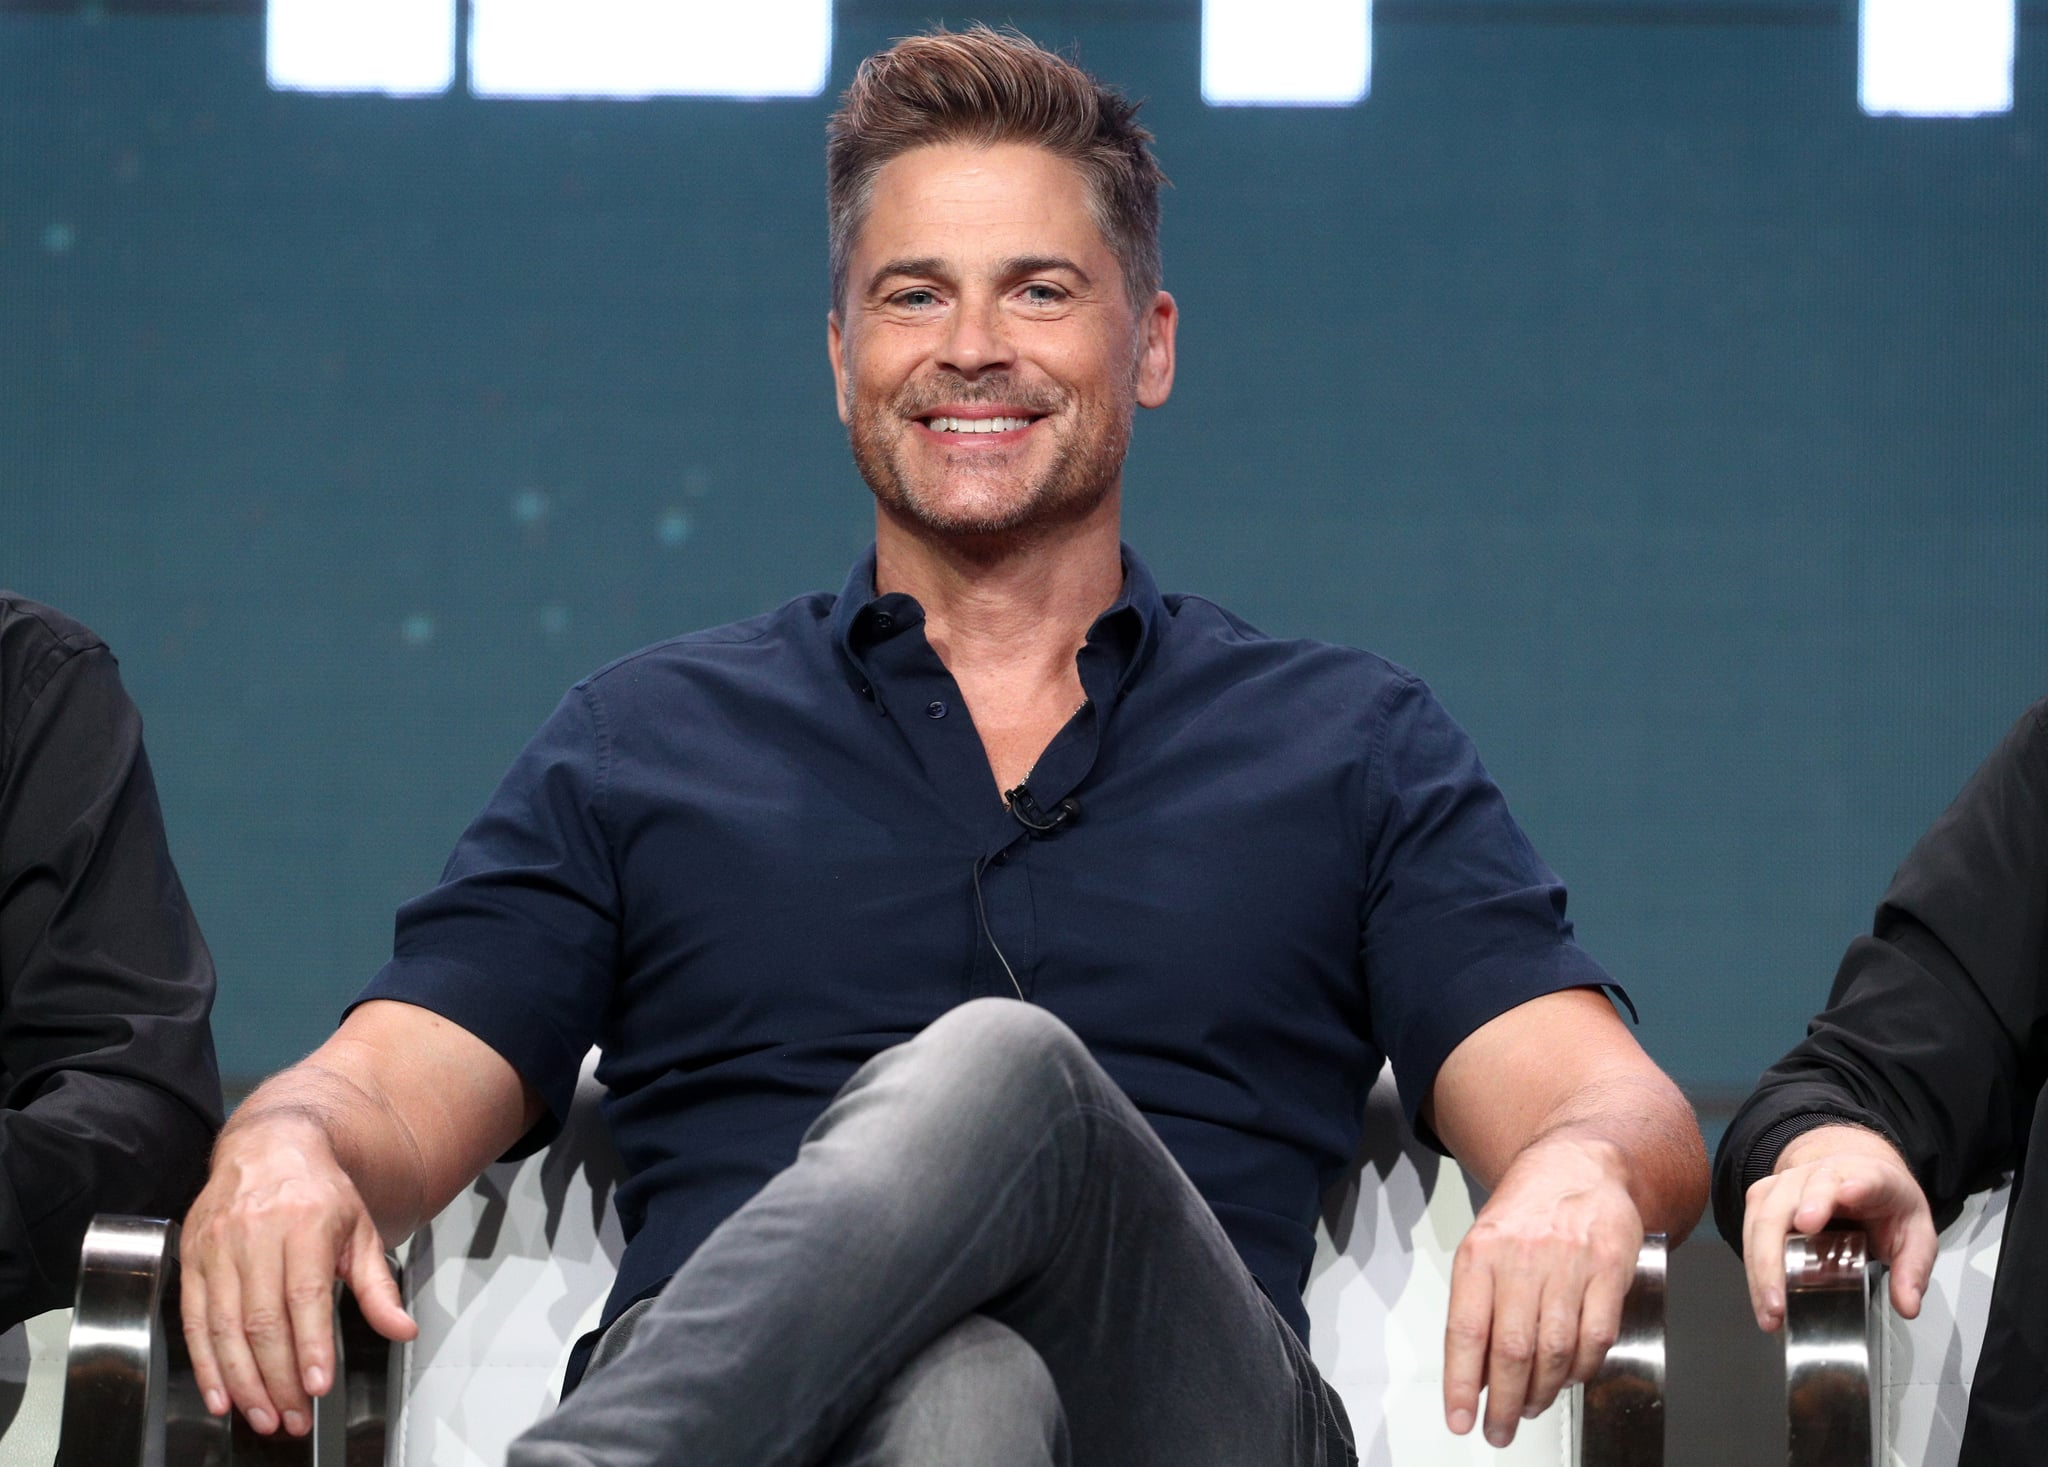 BEVERLY HILLS, CA - JULY 28:  Executive producer Rob Lowe of 'The Lowe Files ' speaks onstage during the A+E  portion of the 2017 Summer Television Critics Association Press Tour at The Beverly Hilton Hotel on July 28, 2017 in Beverly Hills, California.  (Photo by Frederick M. Brown/Getty Images)